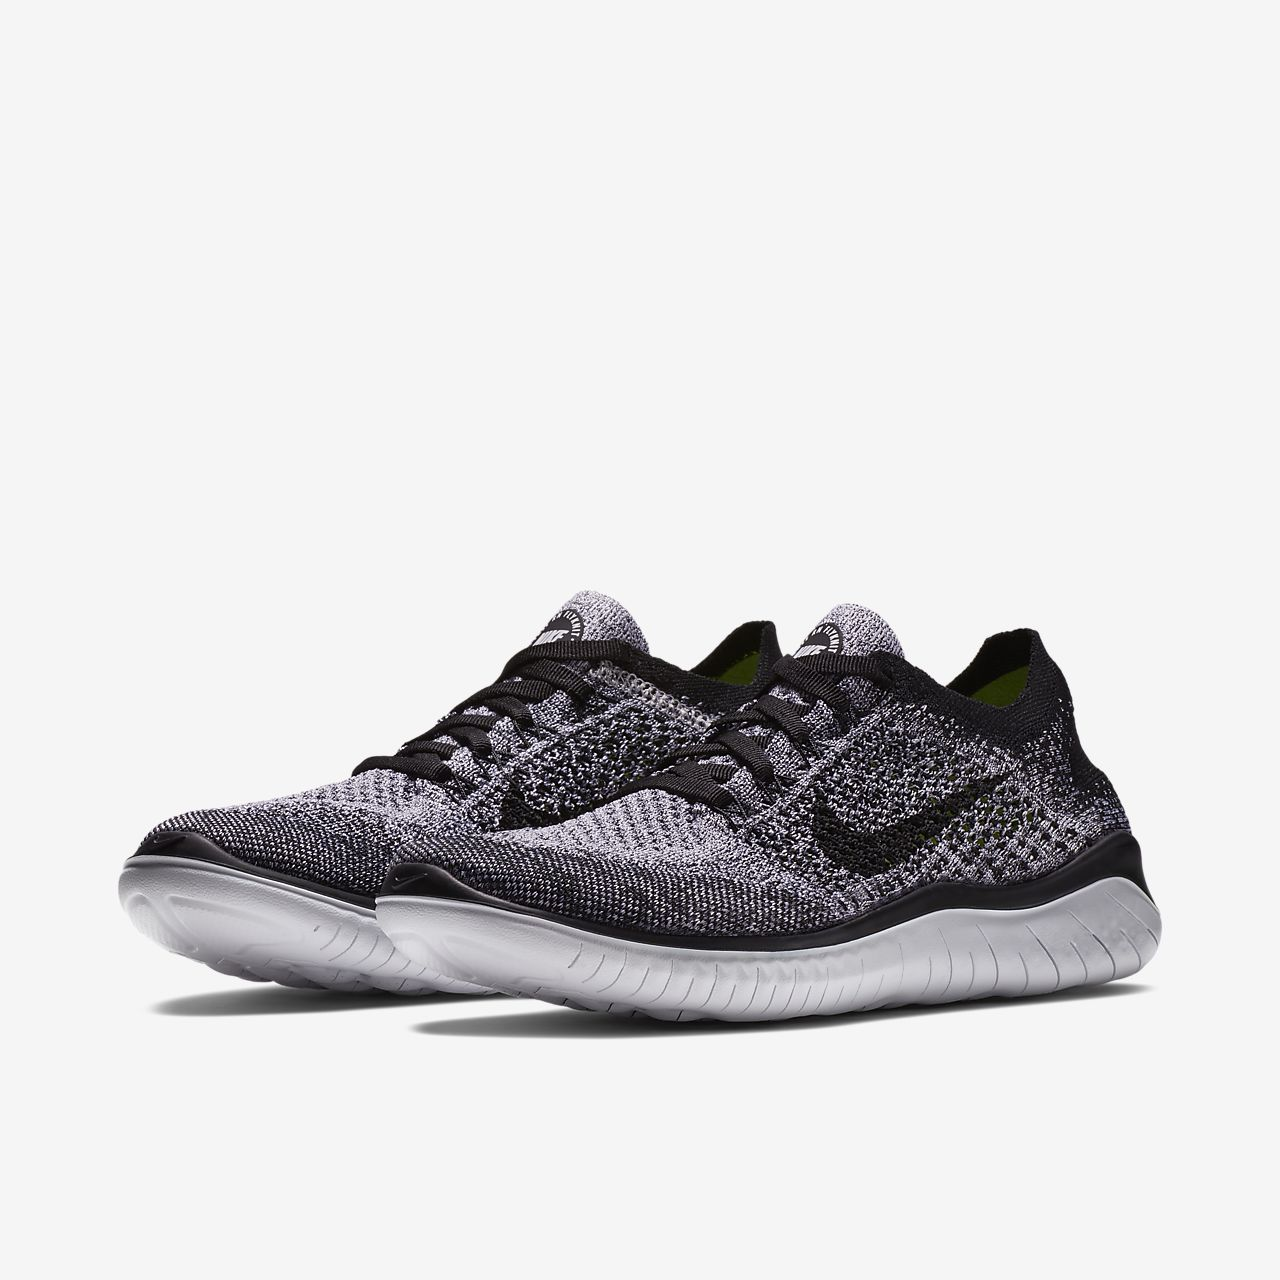 nike free rn flyknit donna 2018